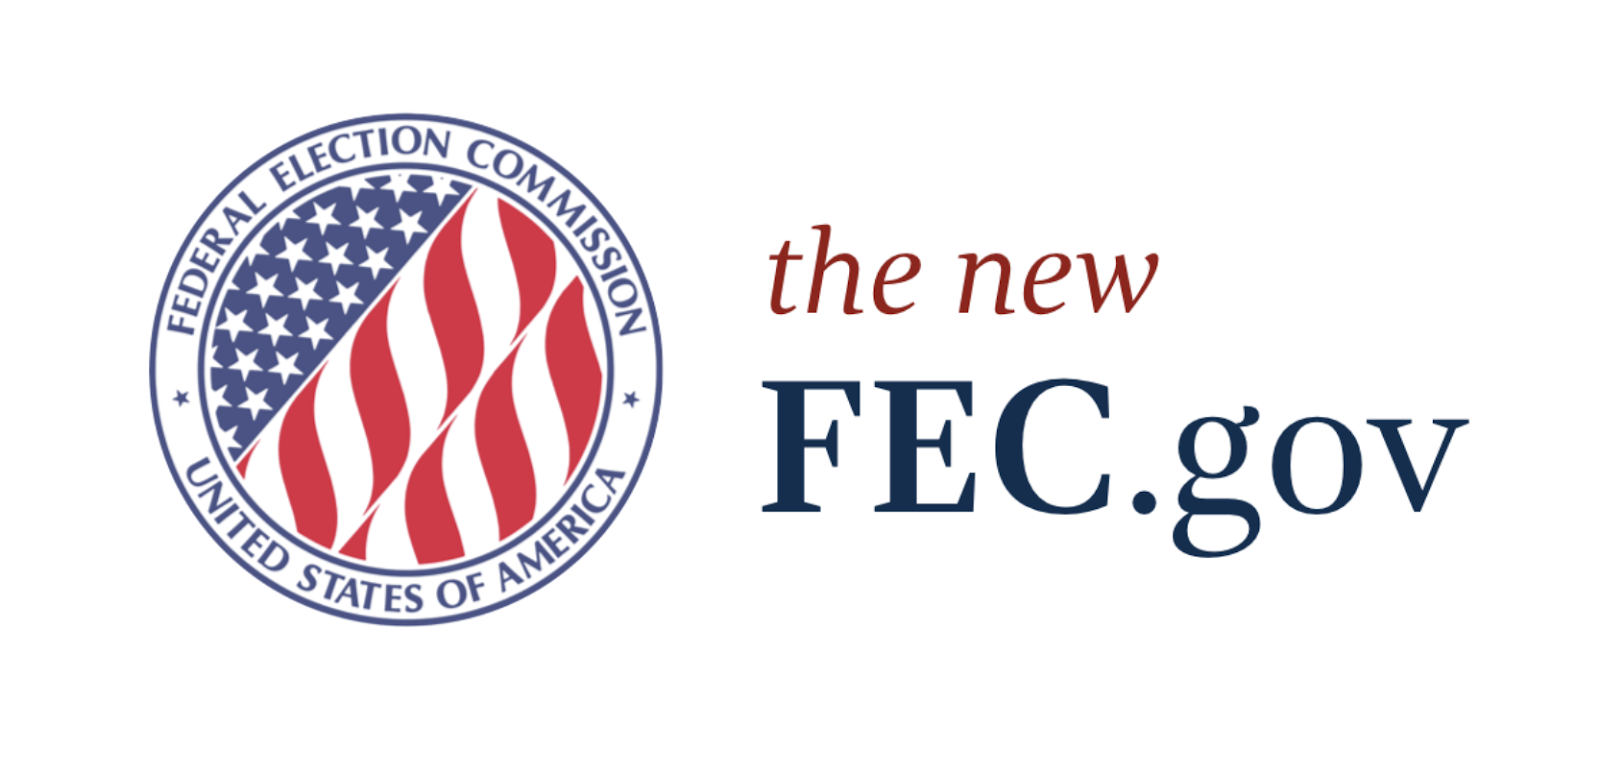 Candidates have until April 15 to present to the FEC their first quarter fundraising earnings. Photo:  fec.gov